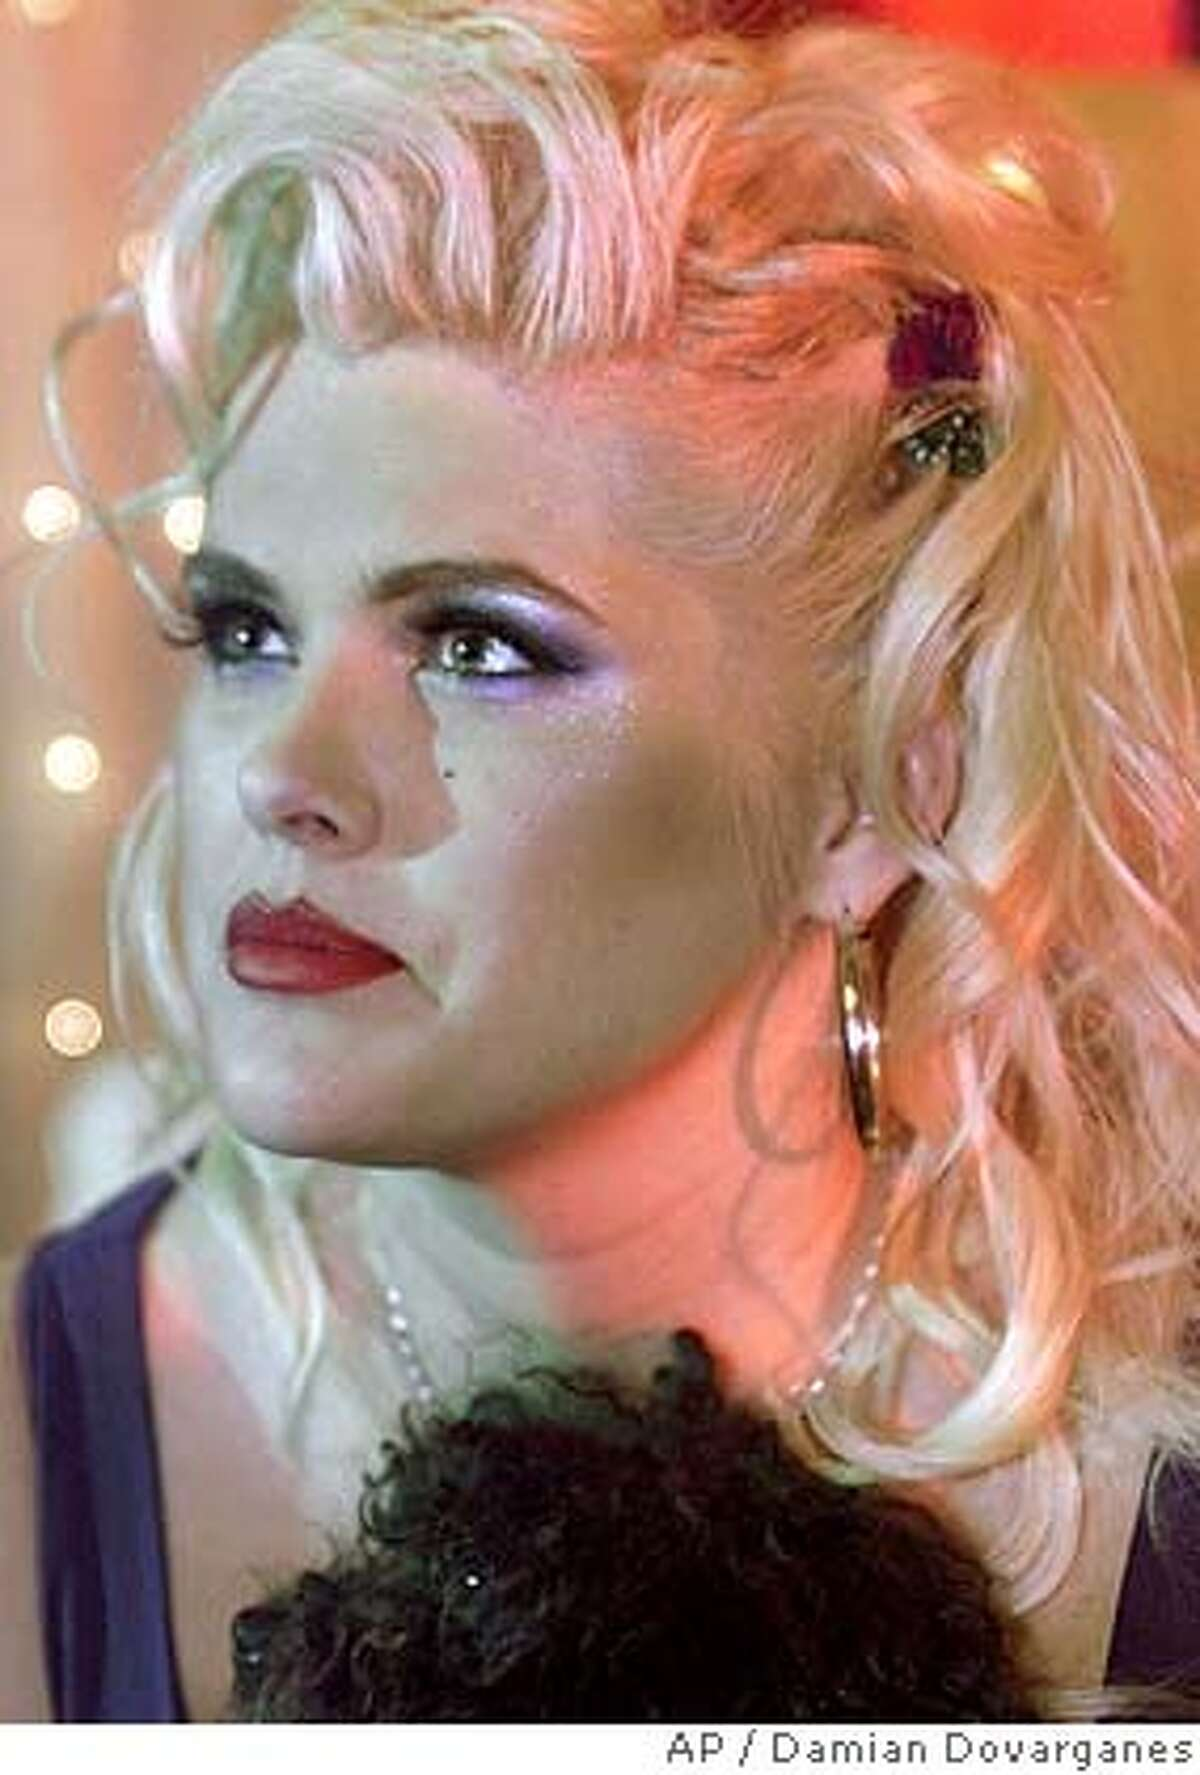 **FILE** Former model Anna Nicole Smith poses in this July 9, 2002 file photo. Anna Nicole Smith died Thursday, Feb. 8, 2007 after collapsing at a hotel. She was 39. (AP Photo/Damian Dovarganes, file) **JULY 9, 2002 FILE PHOTO**